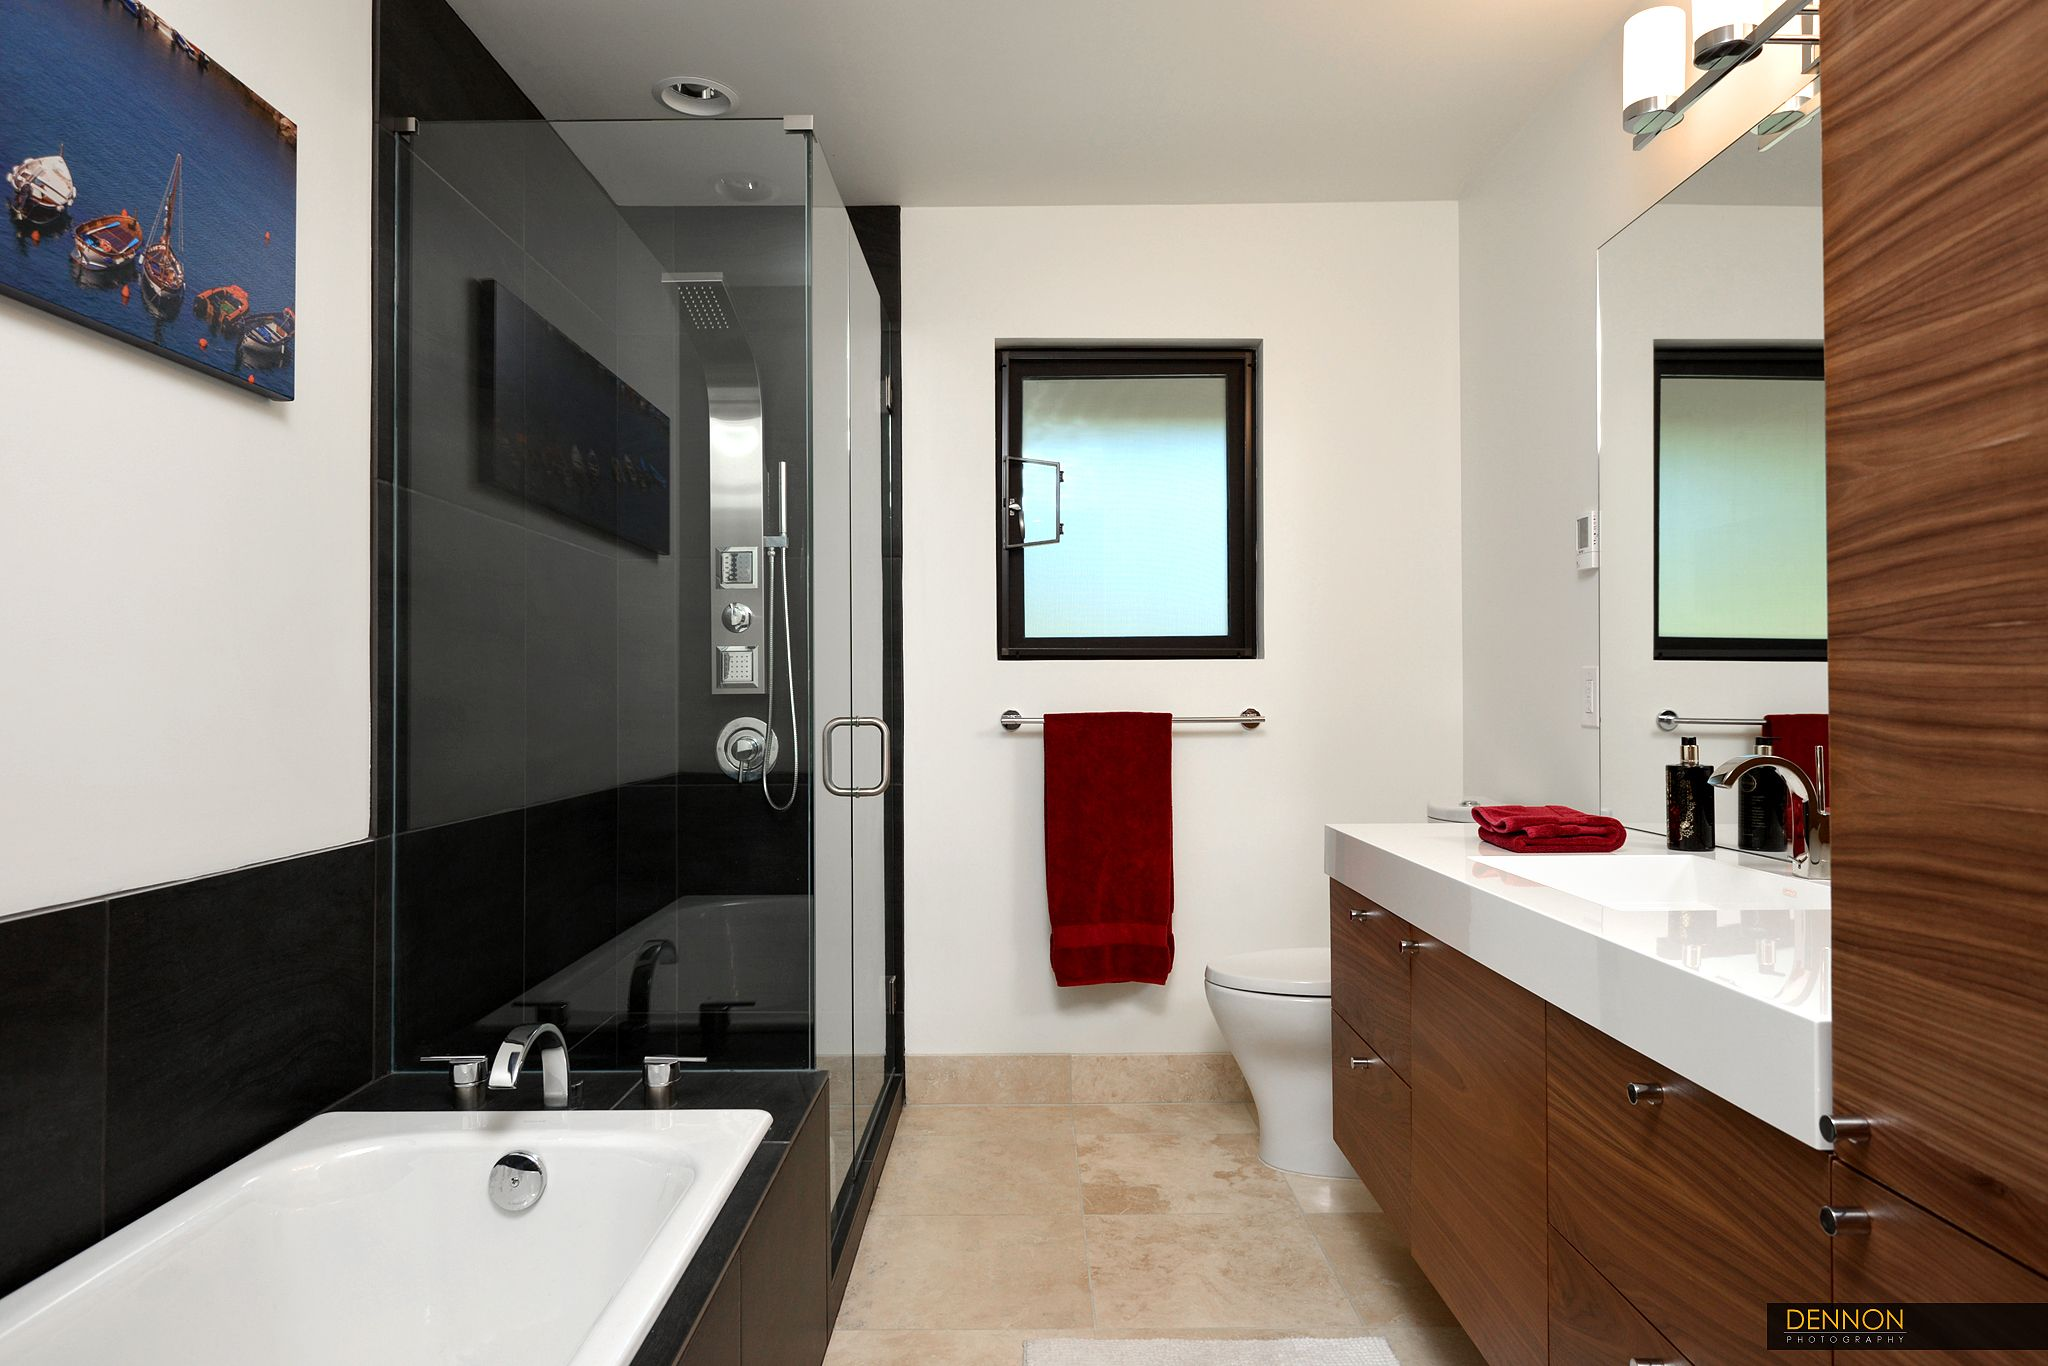 photos of remodeled bathrooms%0A The bathroom is newly remodeled with modern finishes  The black tile  contrasts with the modern